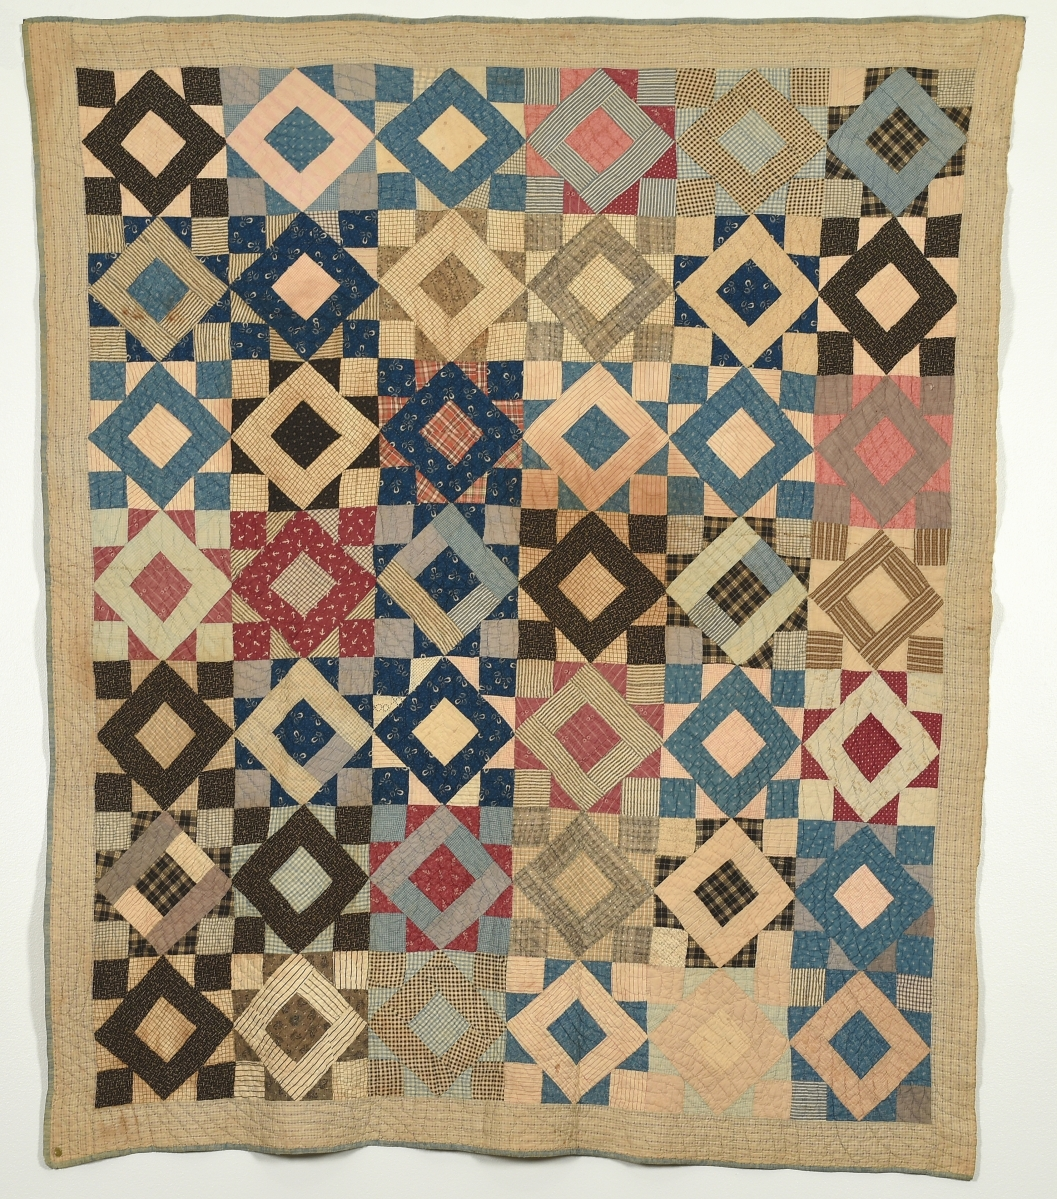 Triangle Square quilt by Beatrice Virginia Elizabeth Jenkins Phillips (1864-1942), late 1800s. Cotton, 78½ by 70 inches. Gift of Dr Paul M. Goggans.